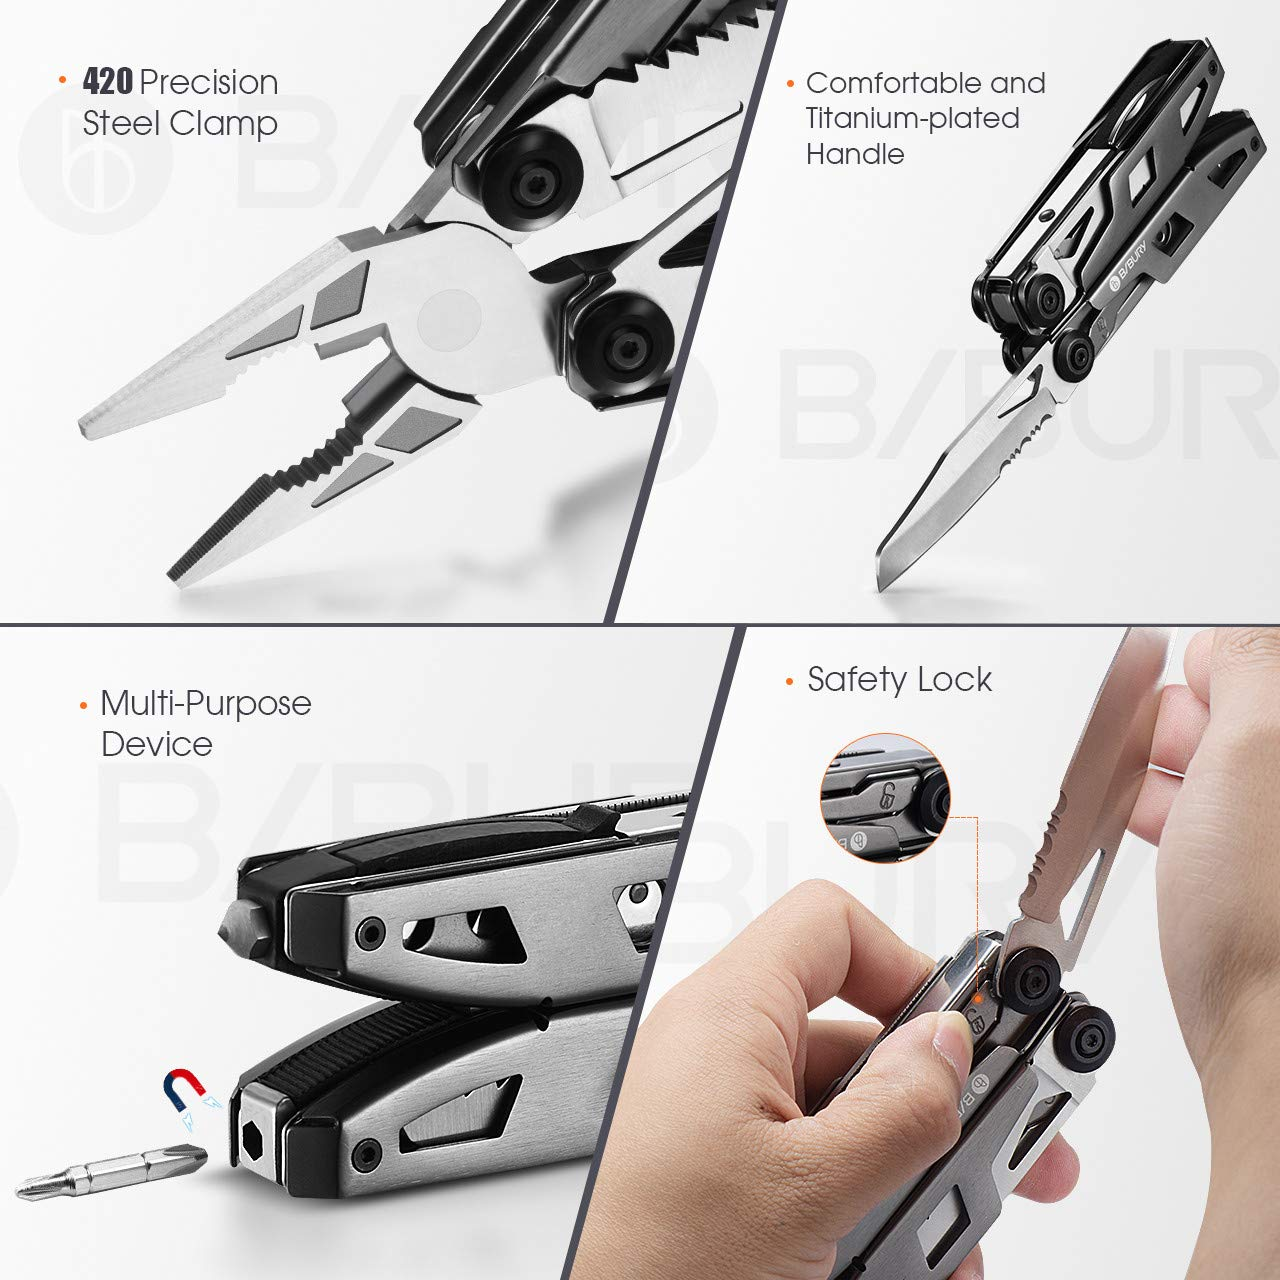 Multitool Pliers,Titanium 18-in-1 Multi-Purpose Pocket Knife Pliers Kit, Durable Stainless Steel Multi-Plier Multi-Tool for Survival, Camping, Hunting, Fishing and Hiking (Titanium 18 in 1) by Bibury (Image #5)